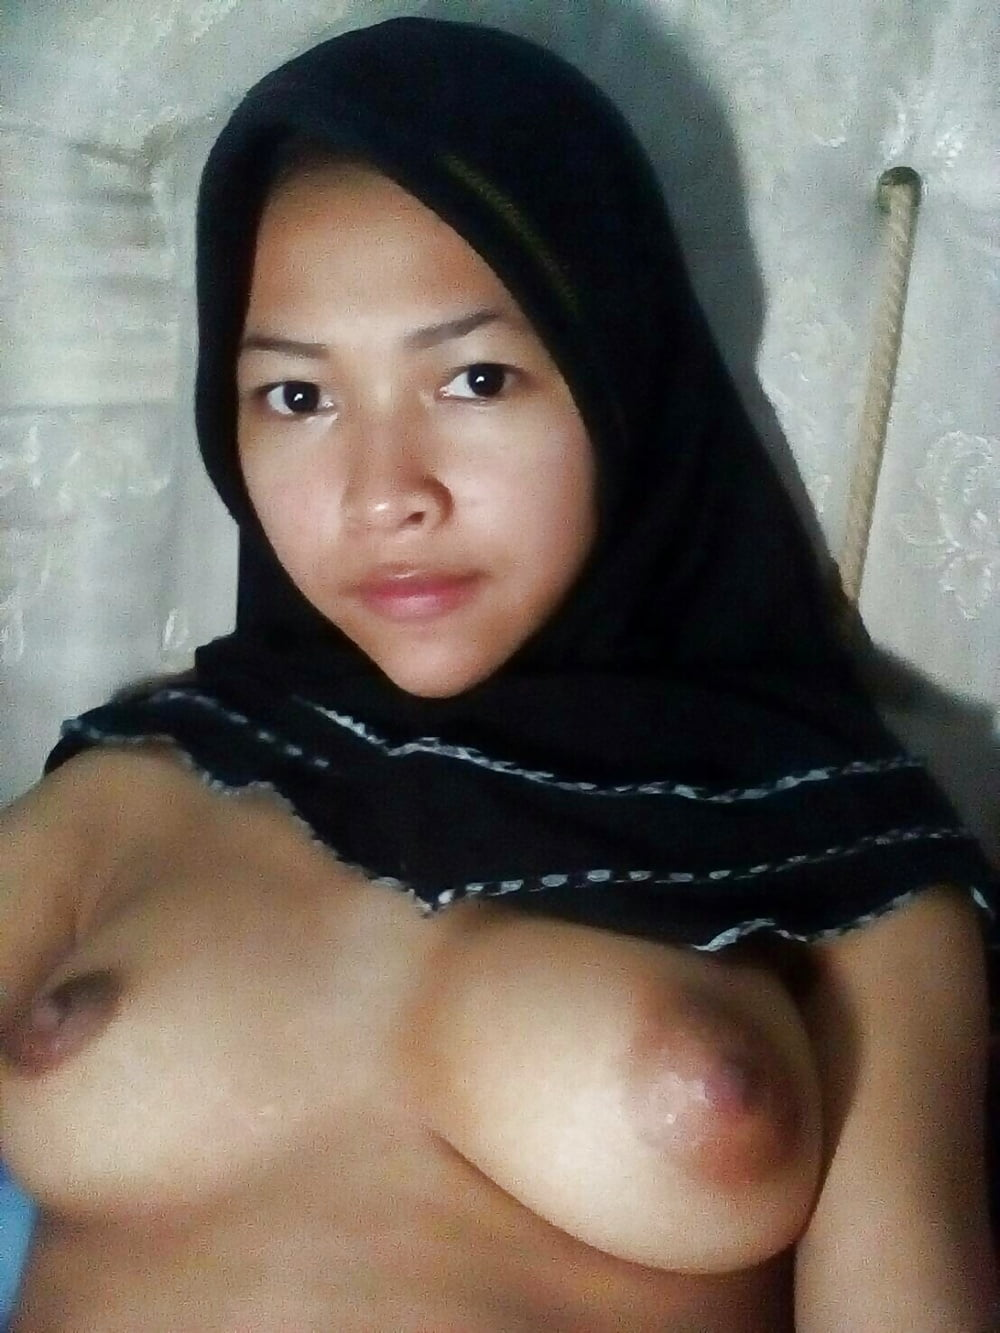 Malaysian girl hot cousin nude sexy leaked